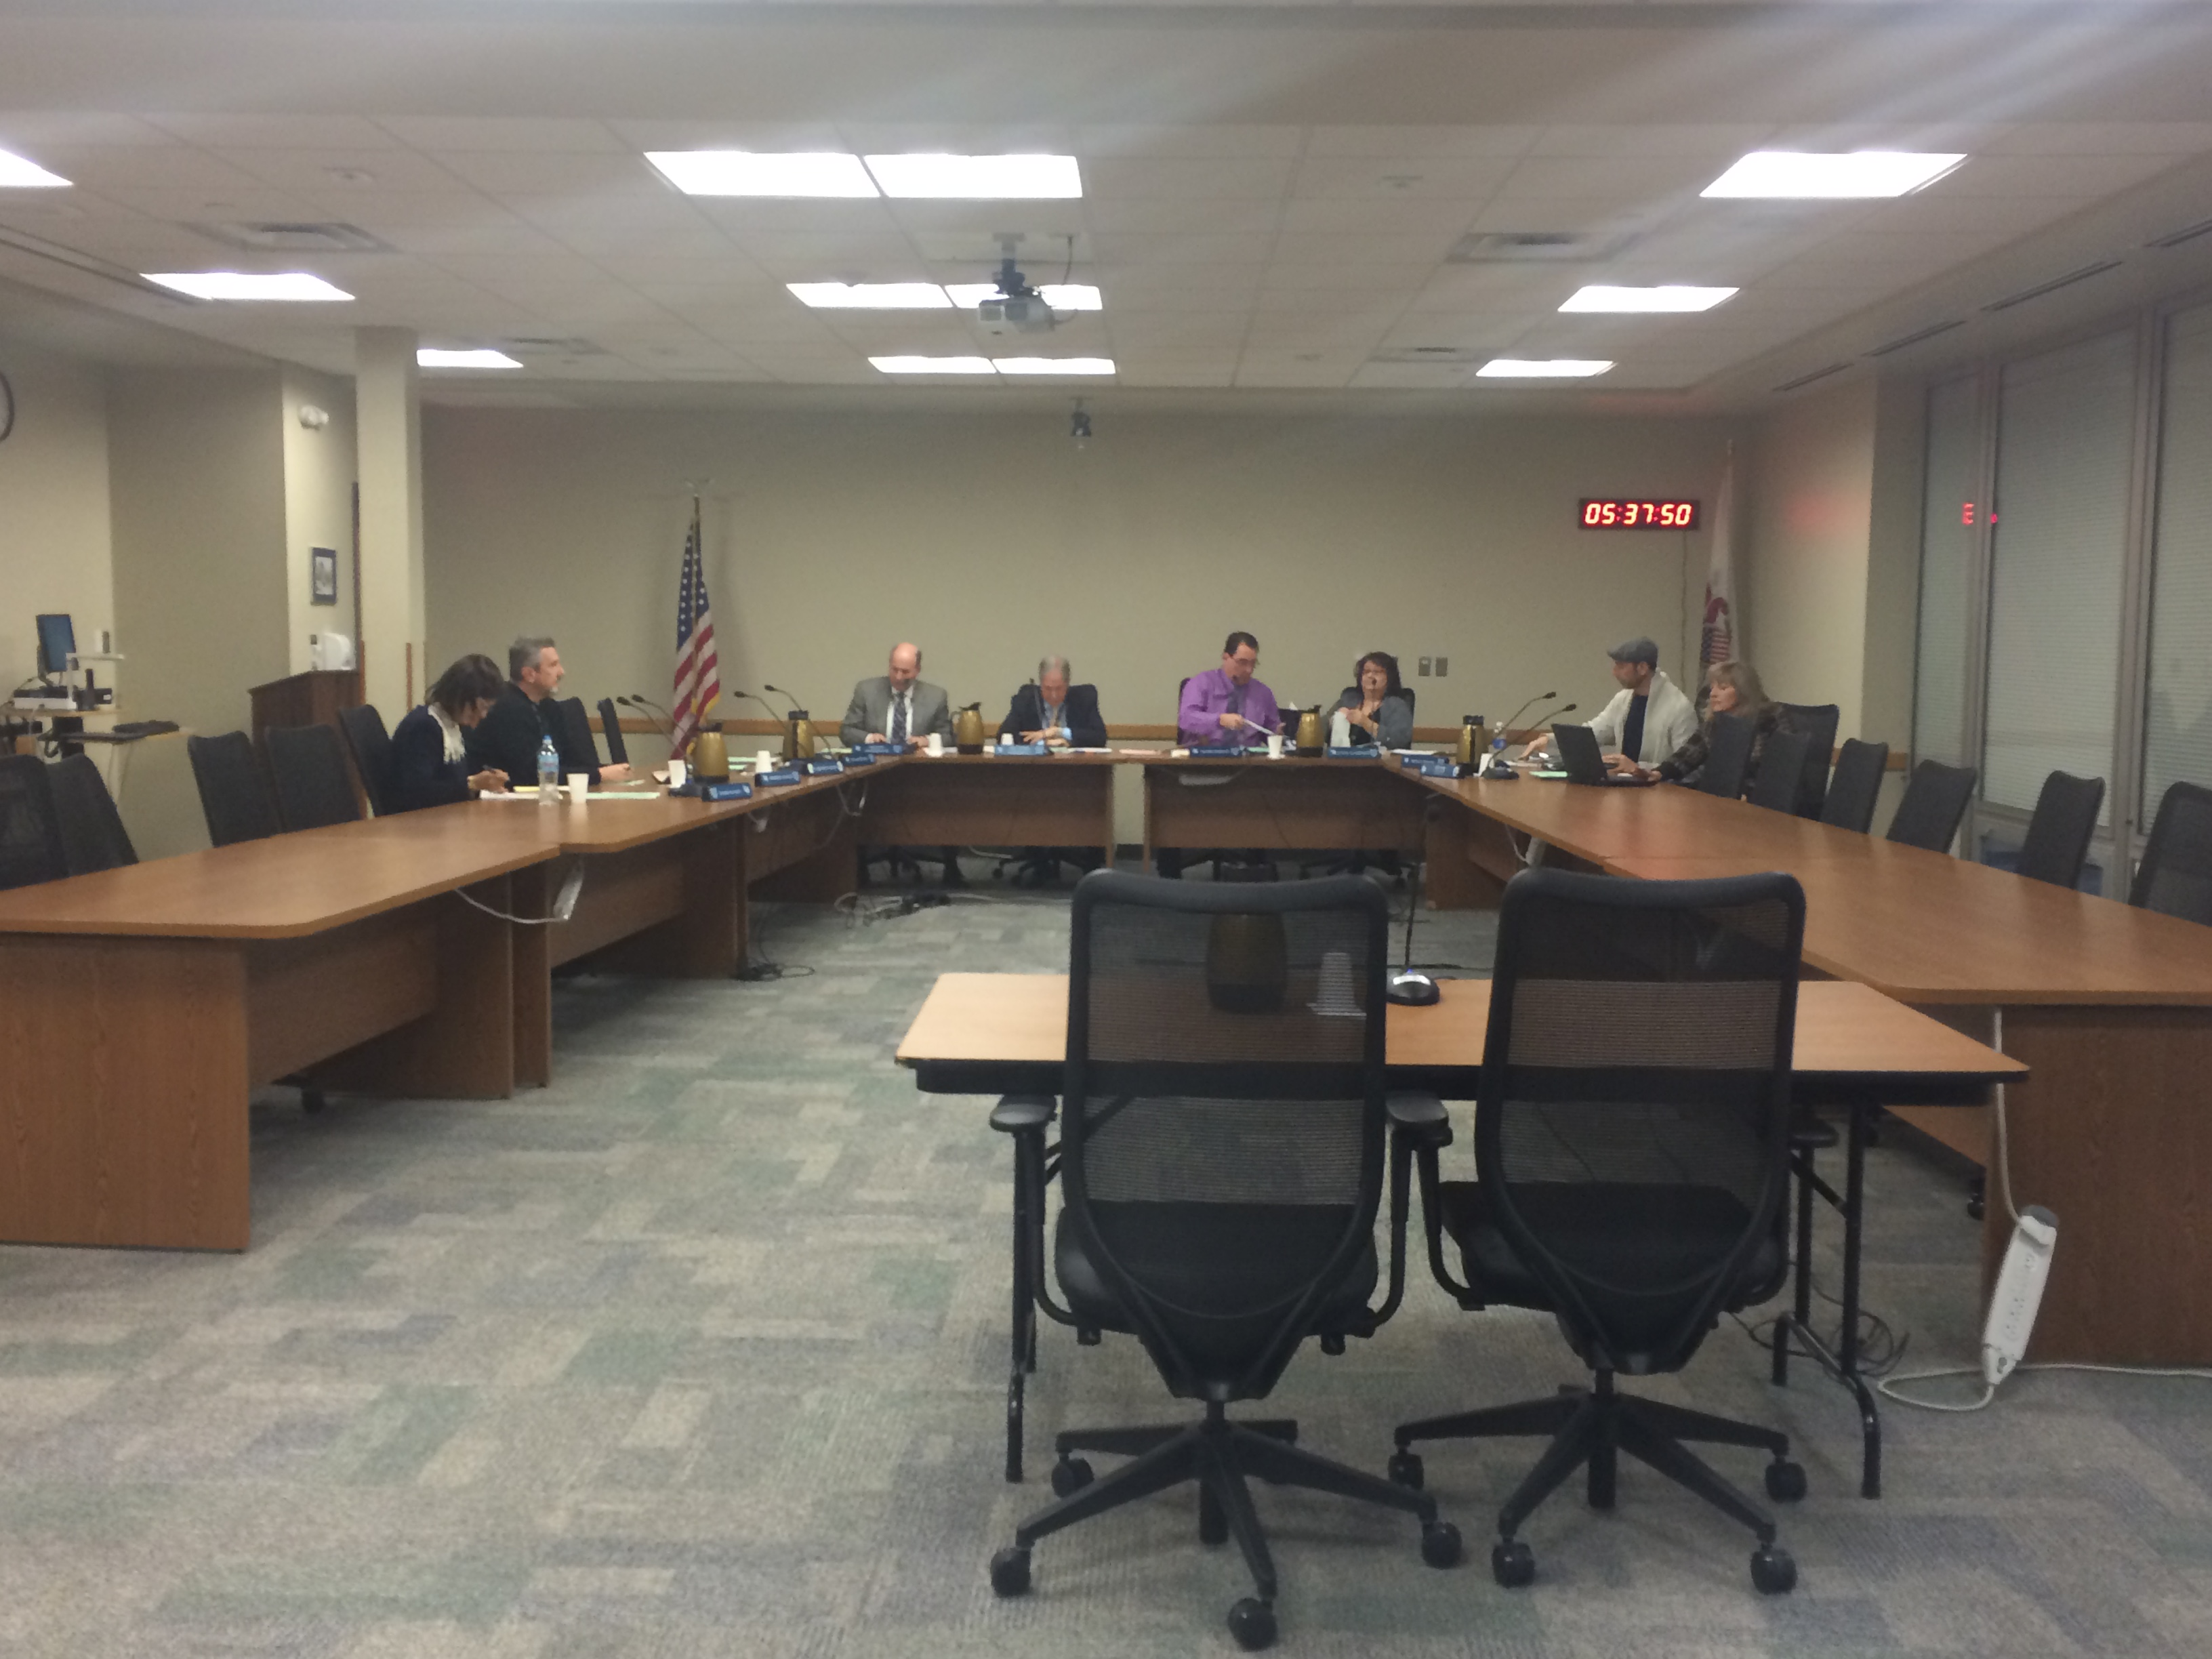 The Board of Education at the special board meeting held Wednesday, Feb. 17, 2016.